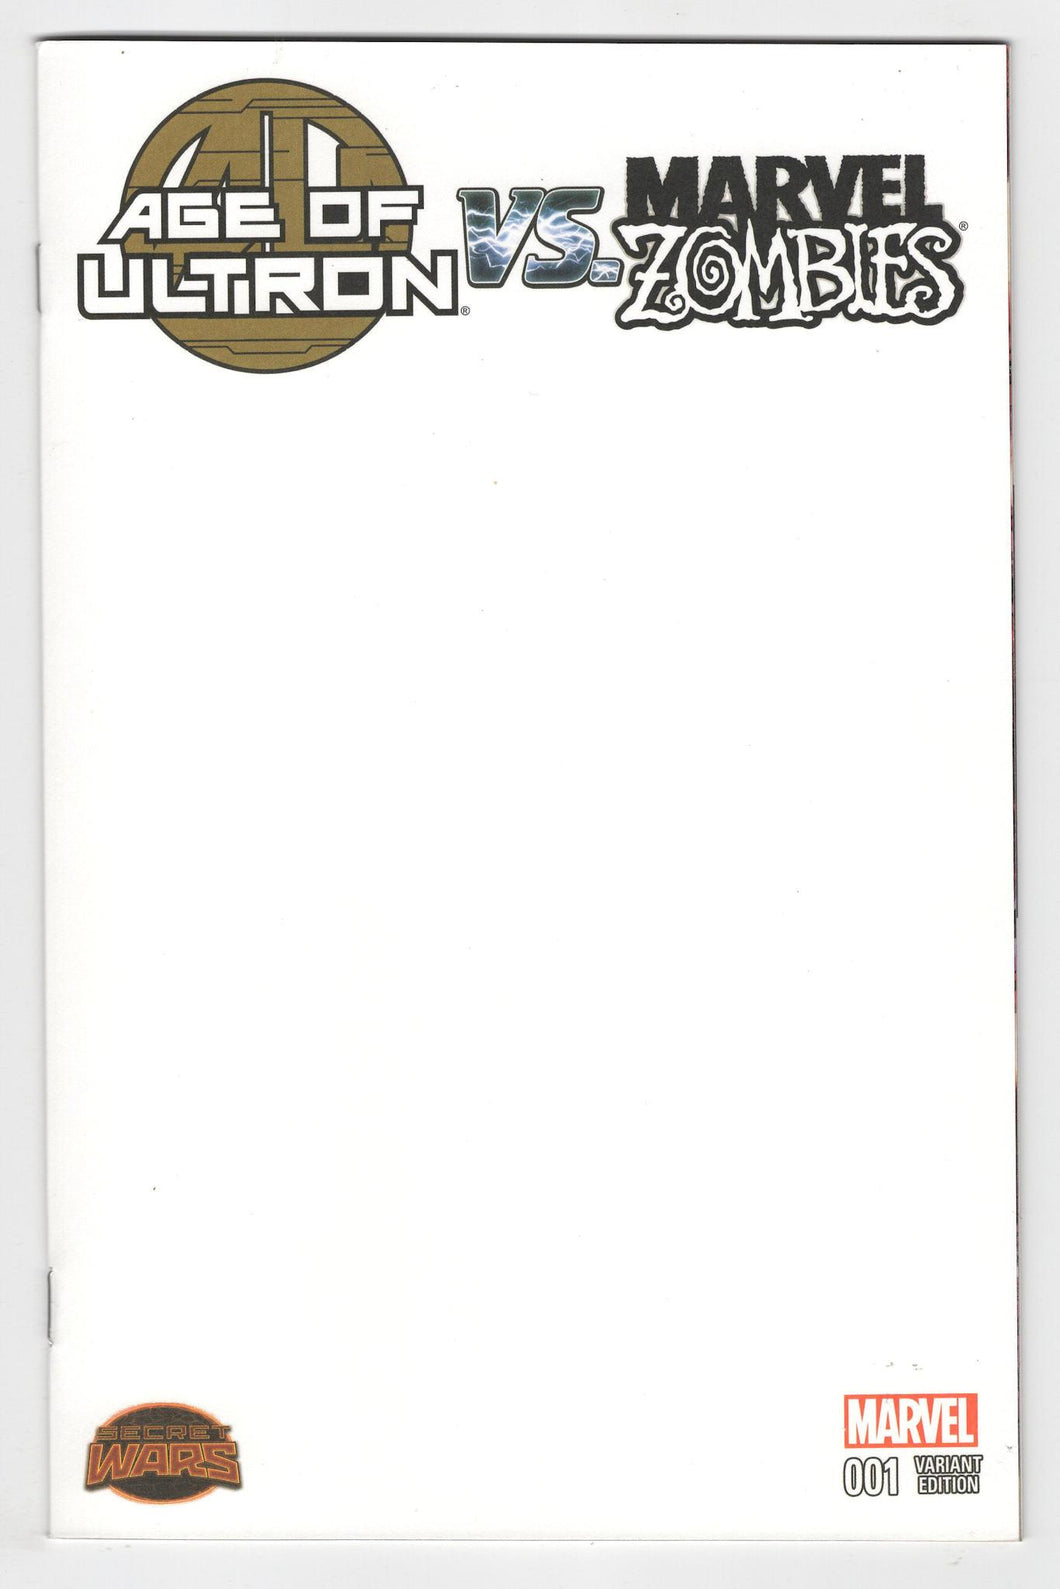 Age of Ultron vs Marvel Zombies #1 Variant Cover Front